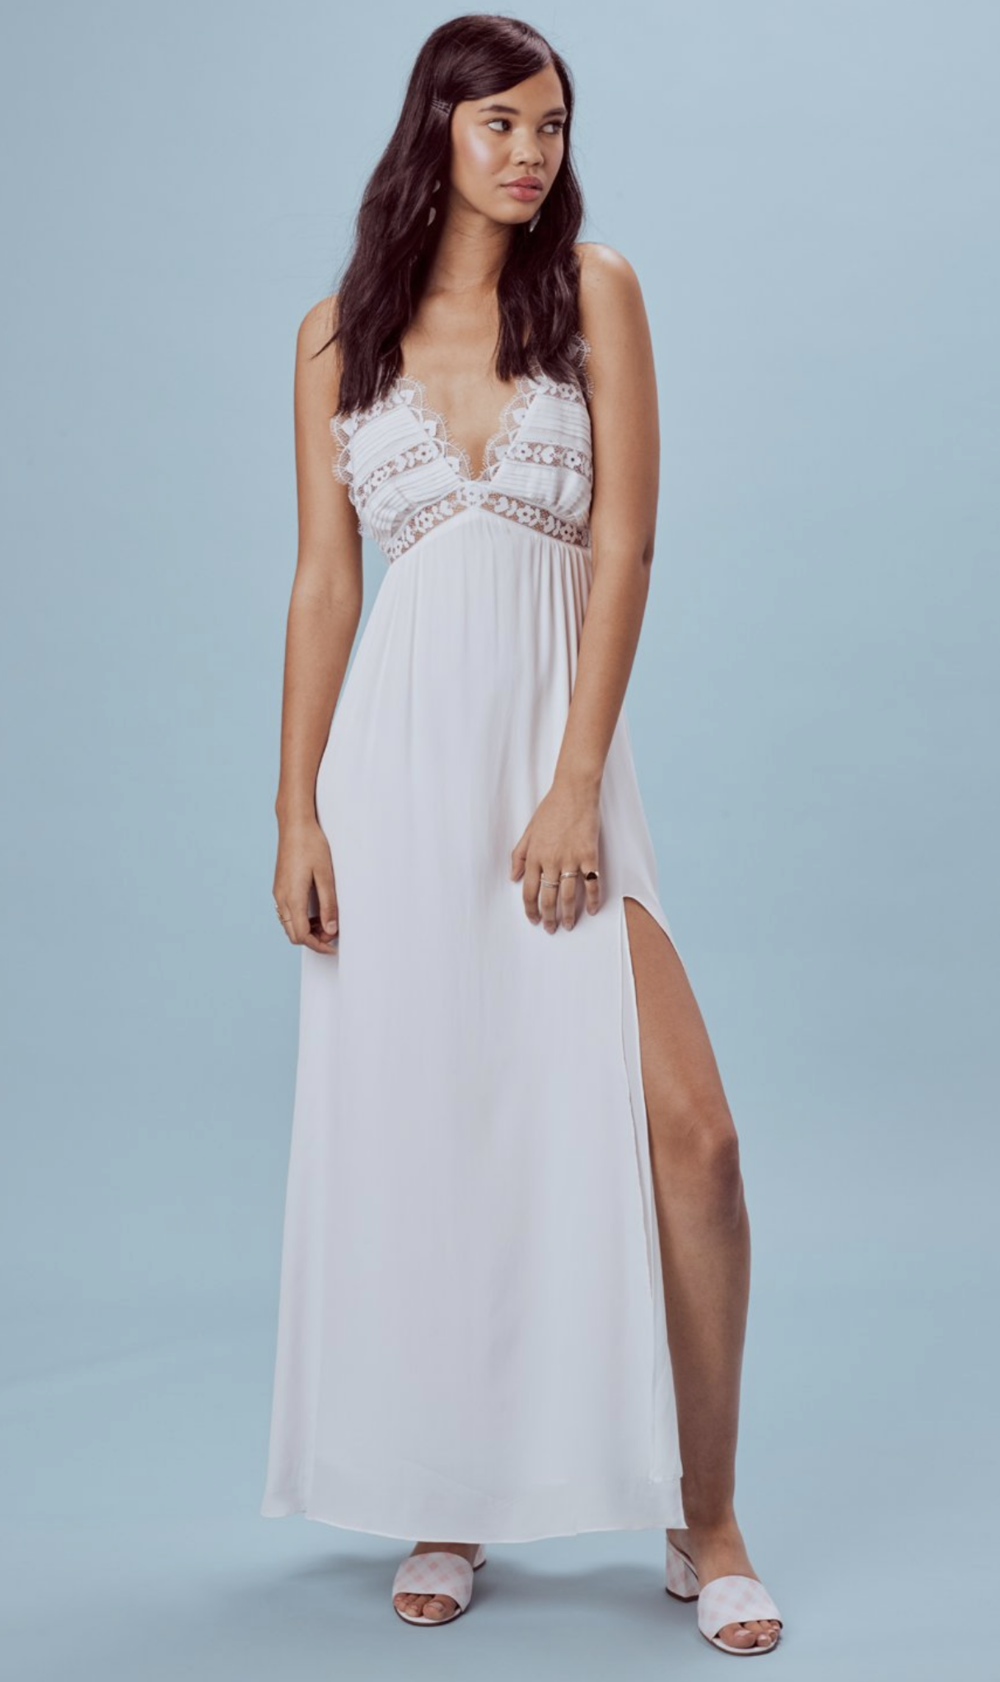 Lovebird Maxi Dress - $288